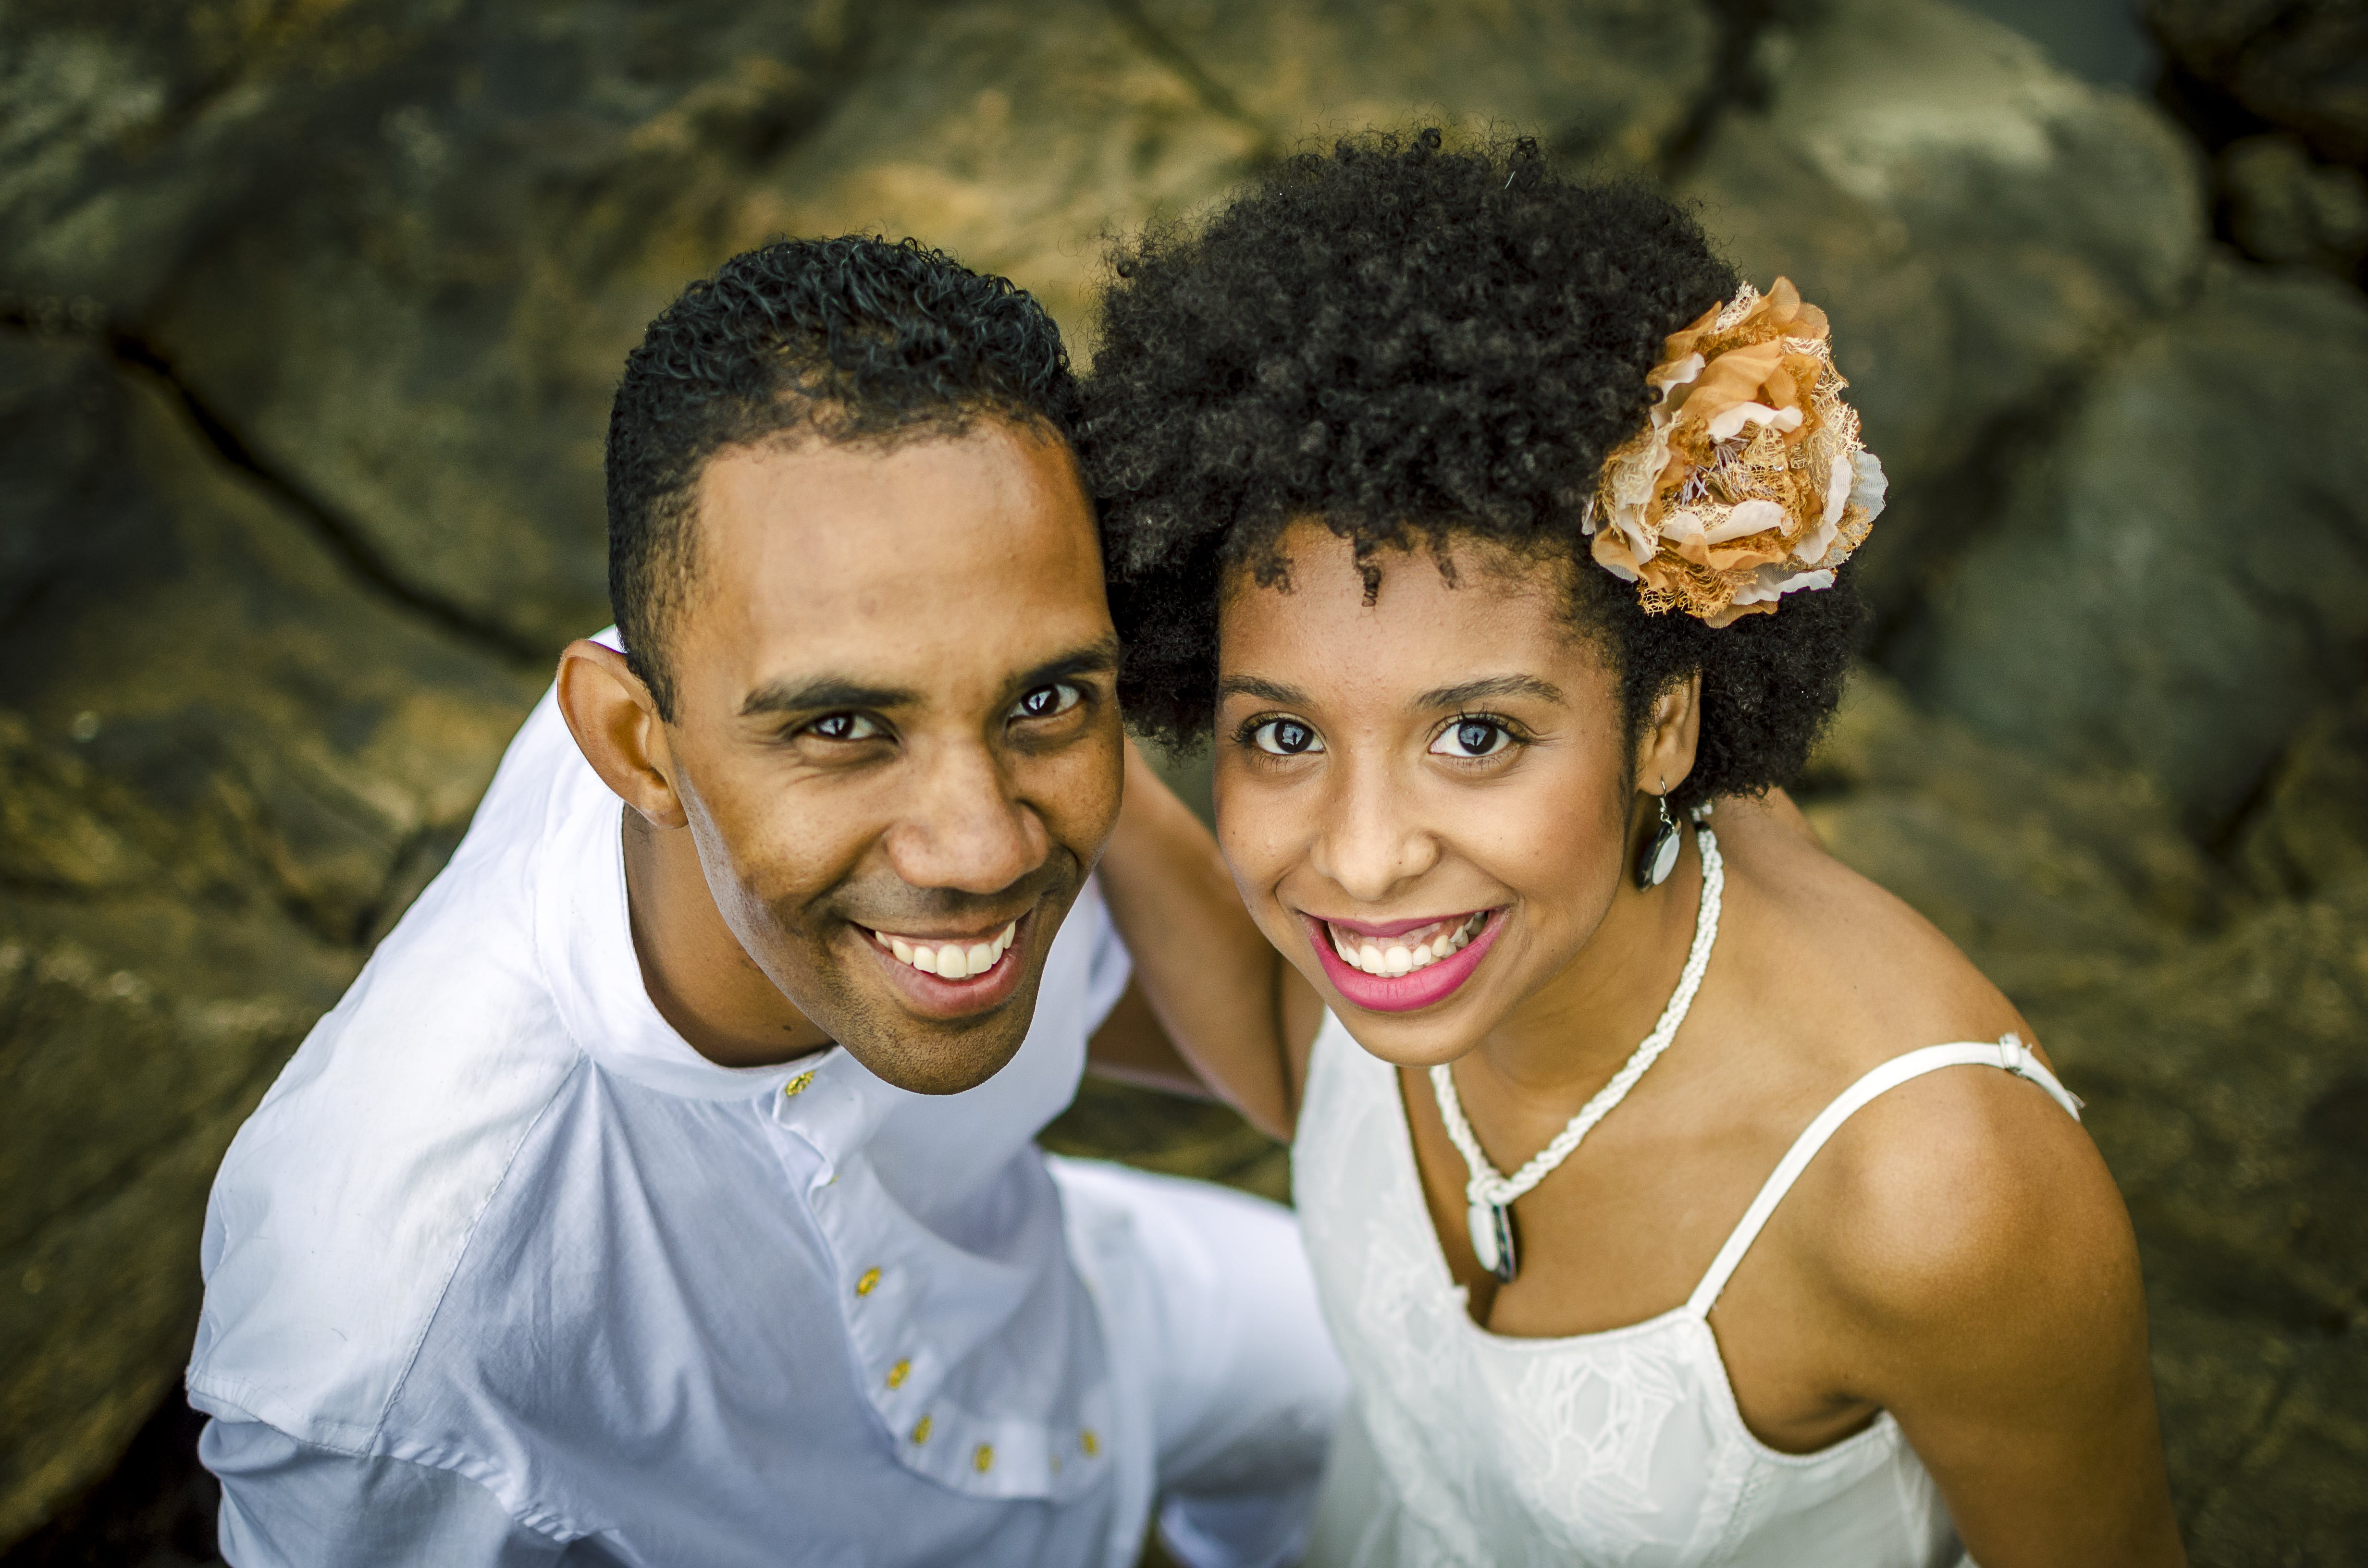 Photo of a Man and Woman Smiling While Standing on Rocks